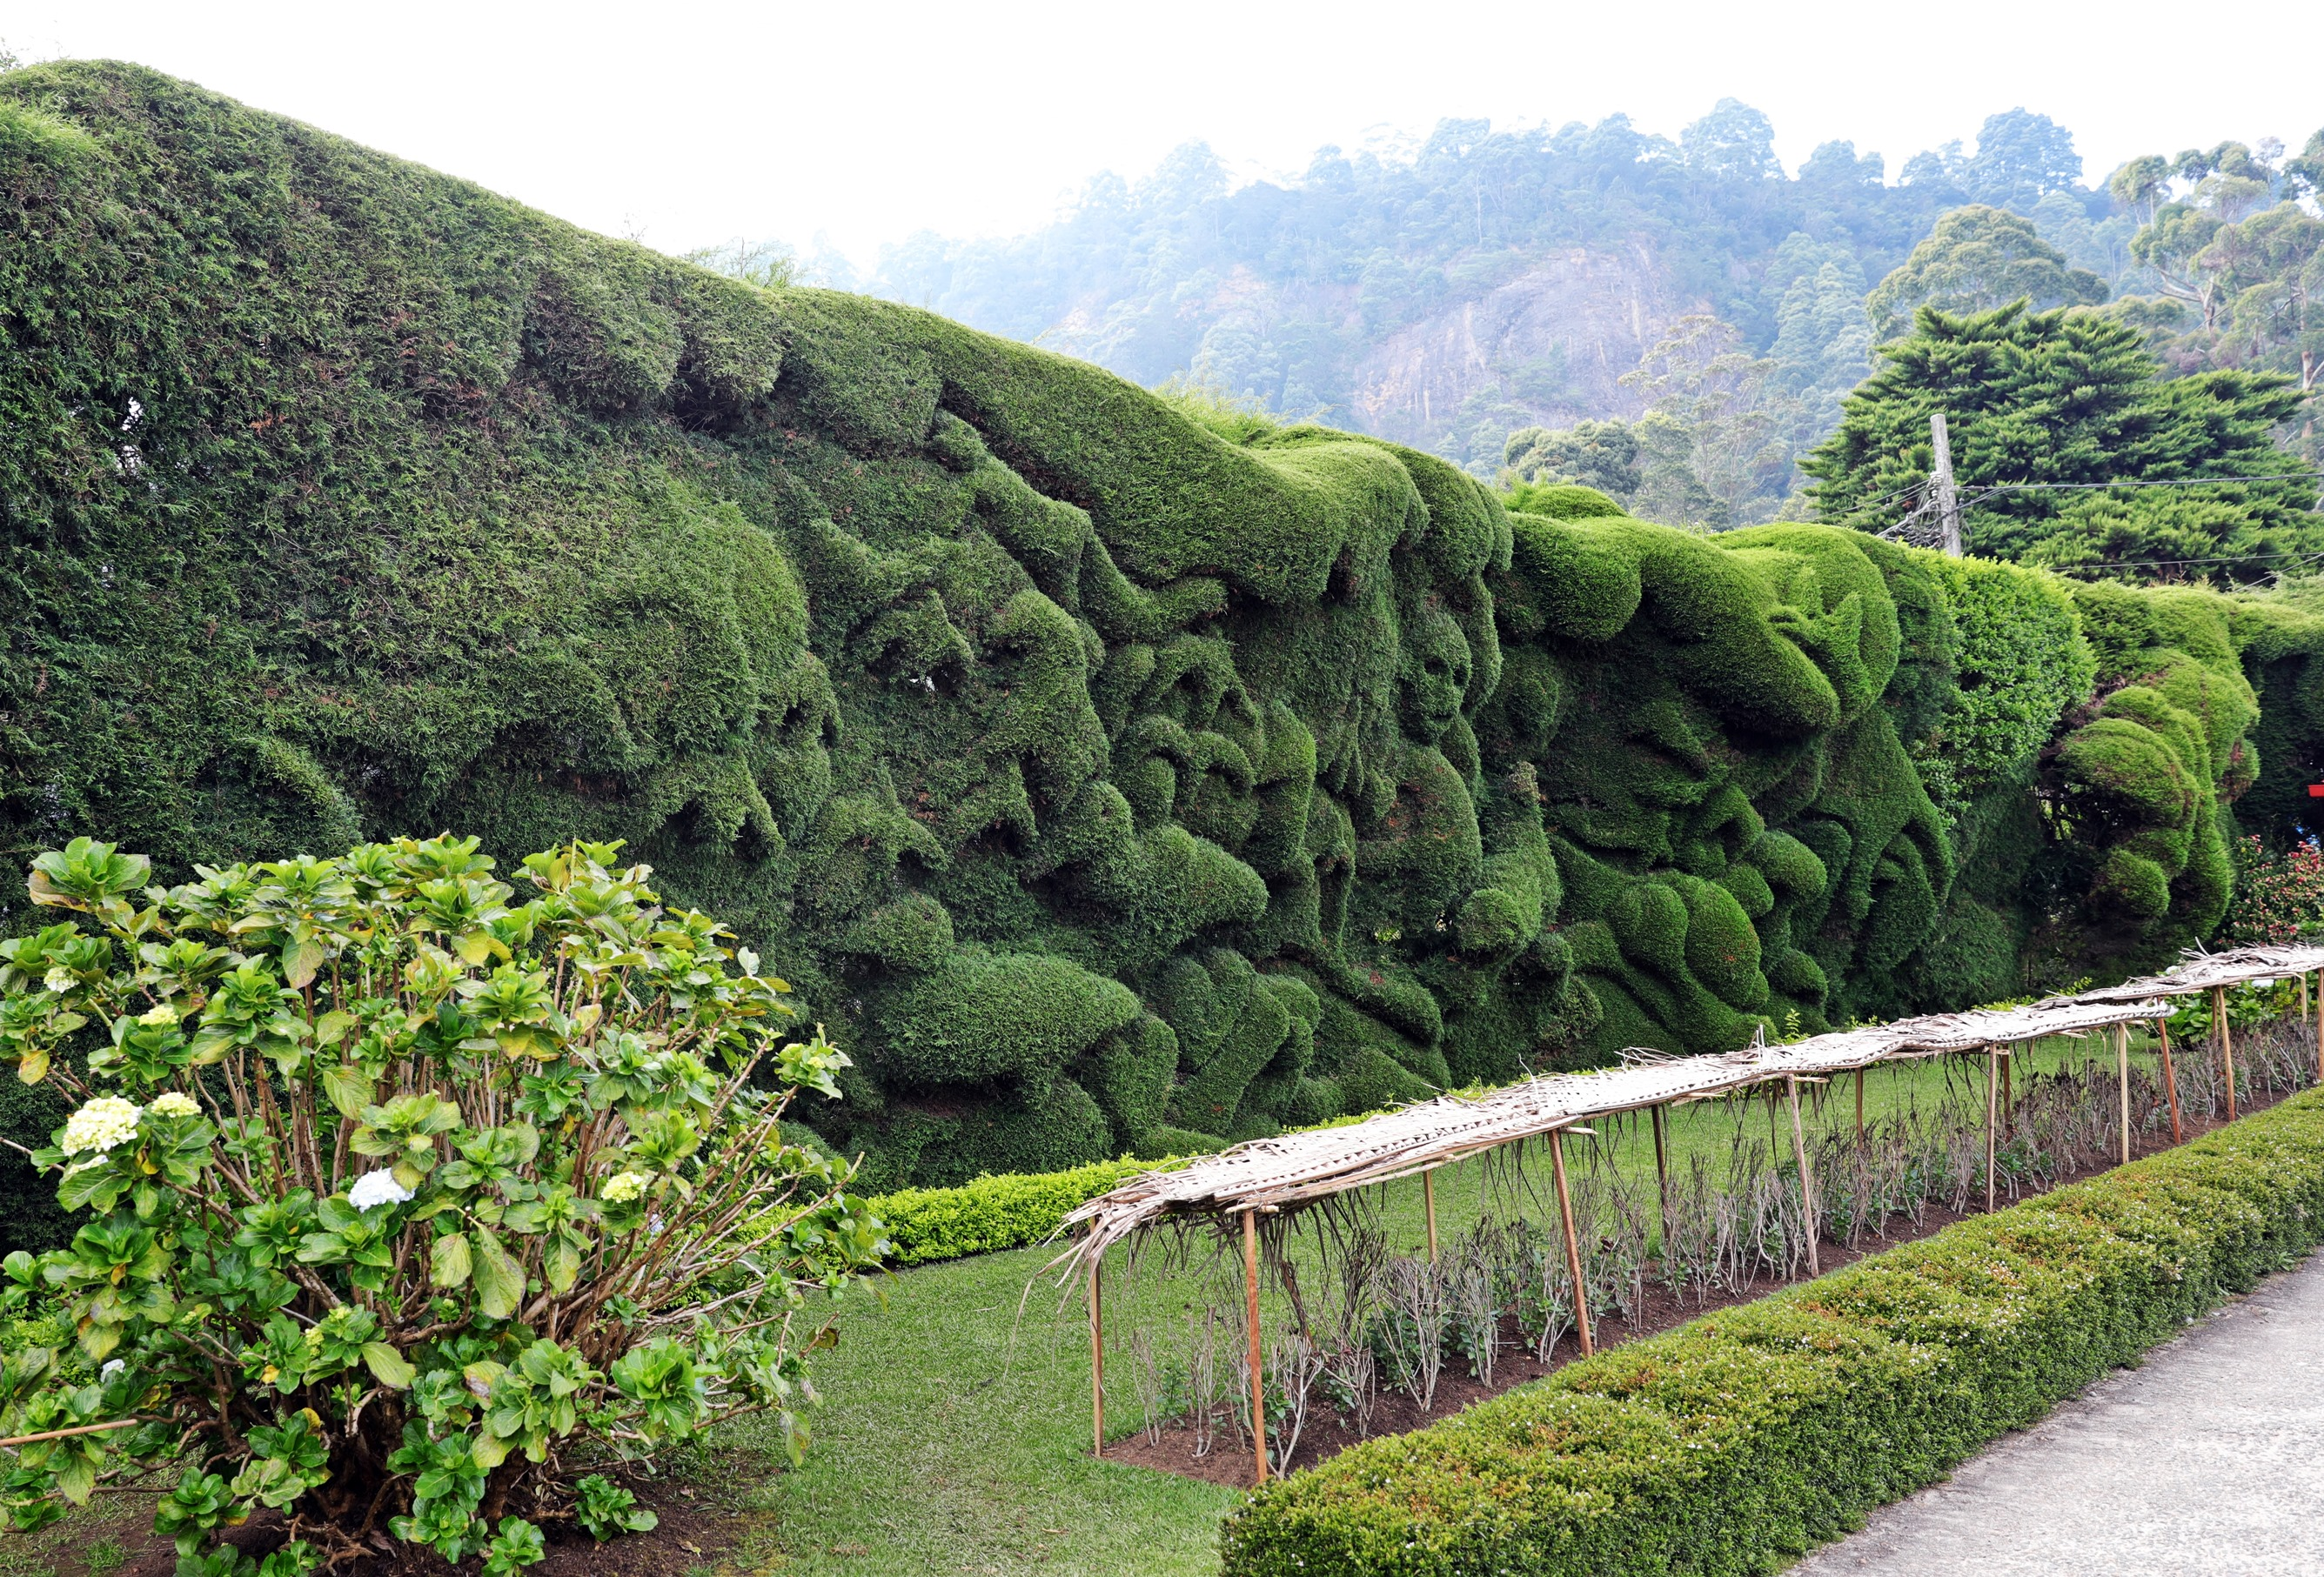 Edward Scizzorhands hedges, Grand Hotel, Nuwara Eliya